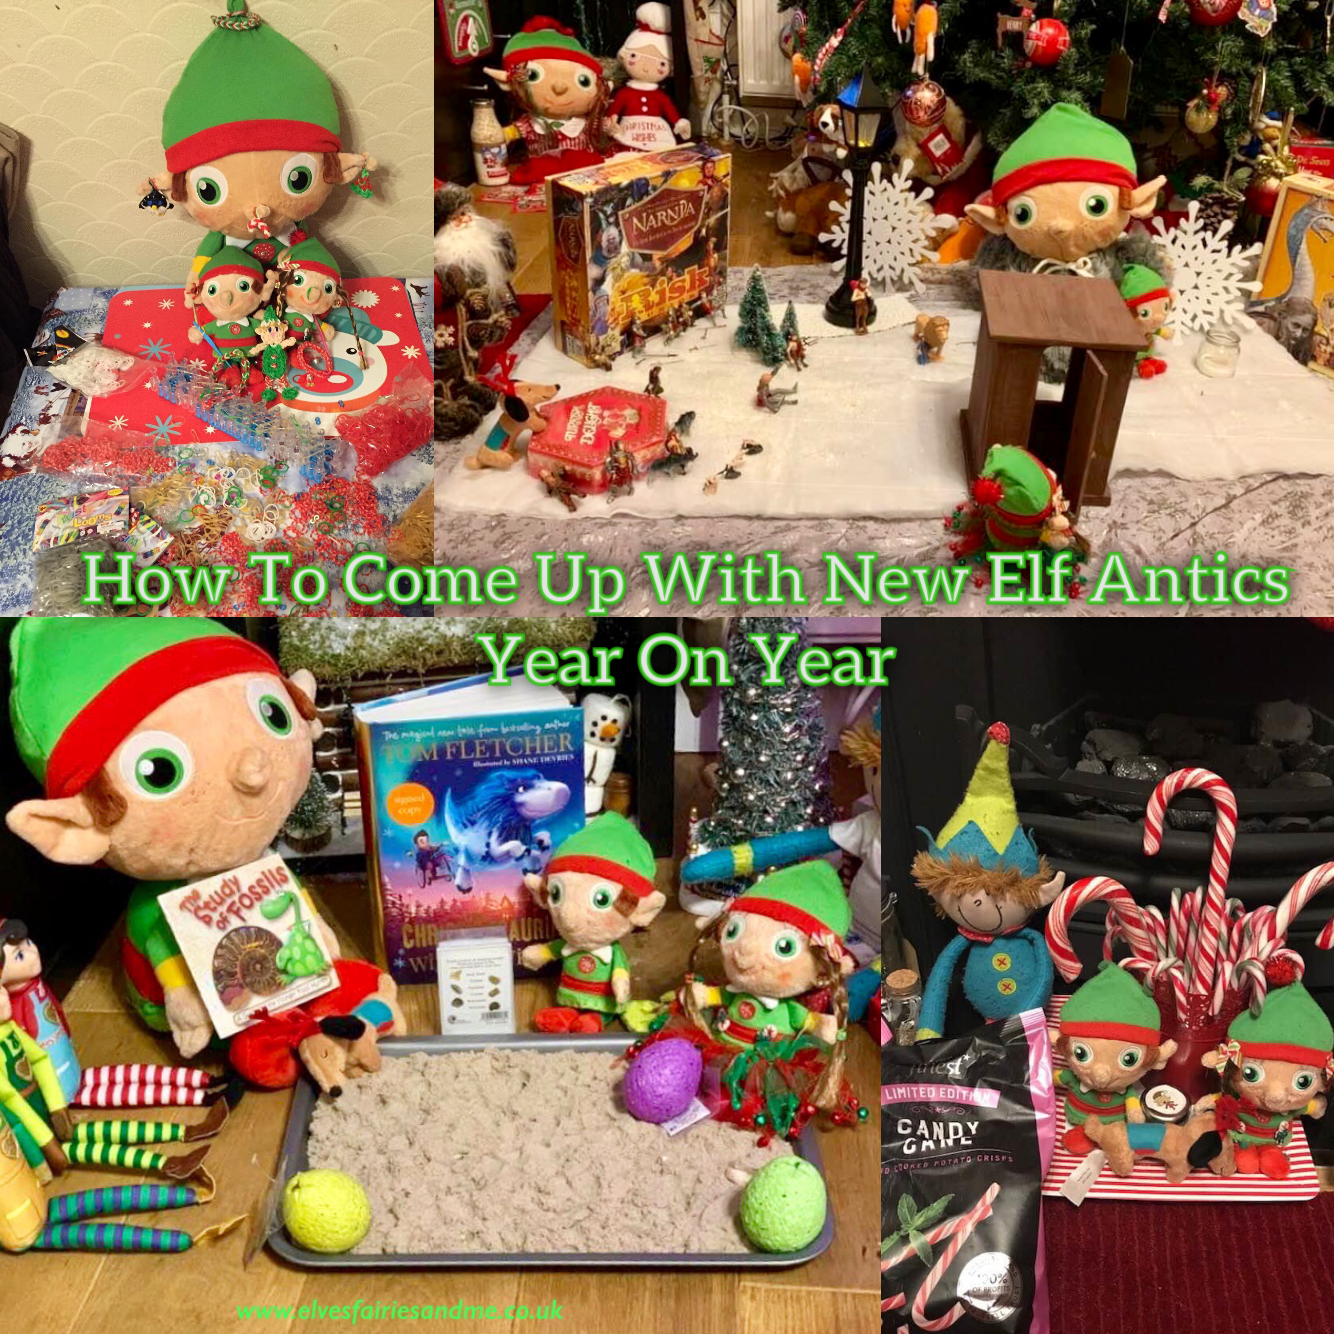 How To Come Up With New Elf On The Shelf Antics Year On Year